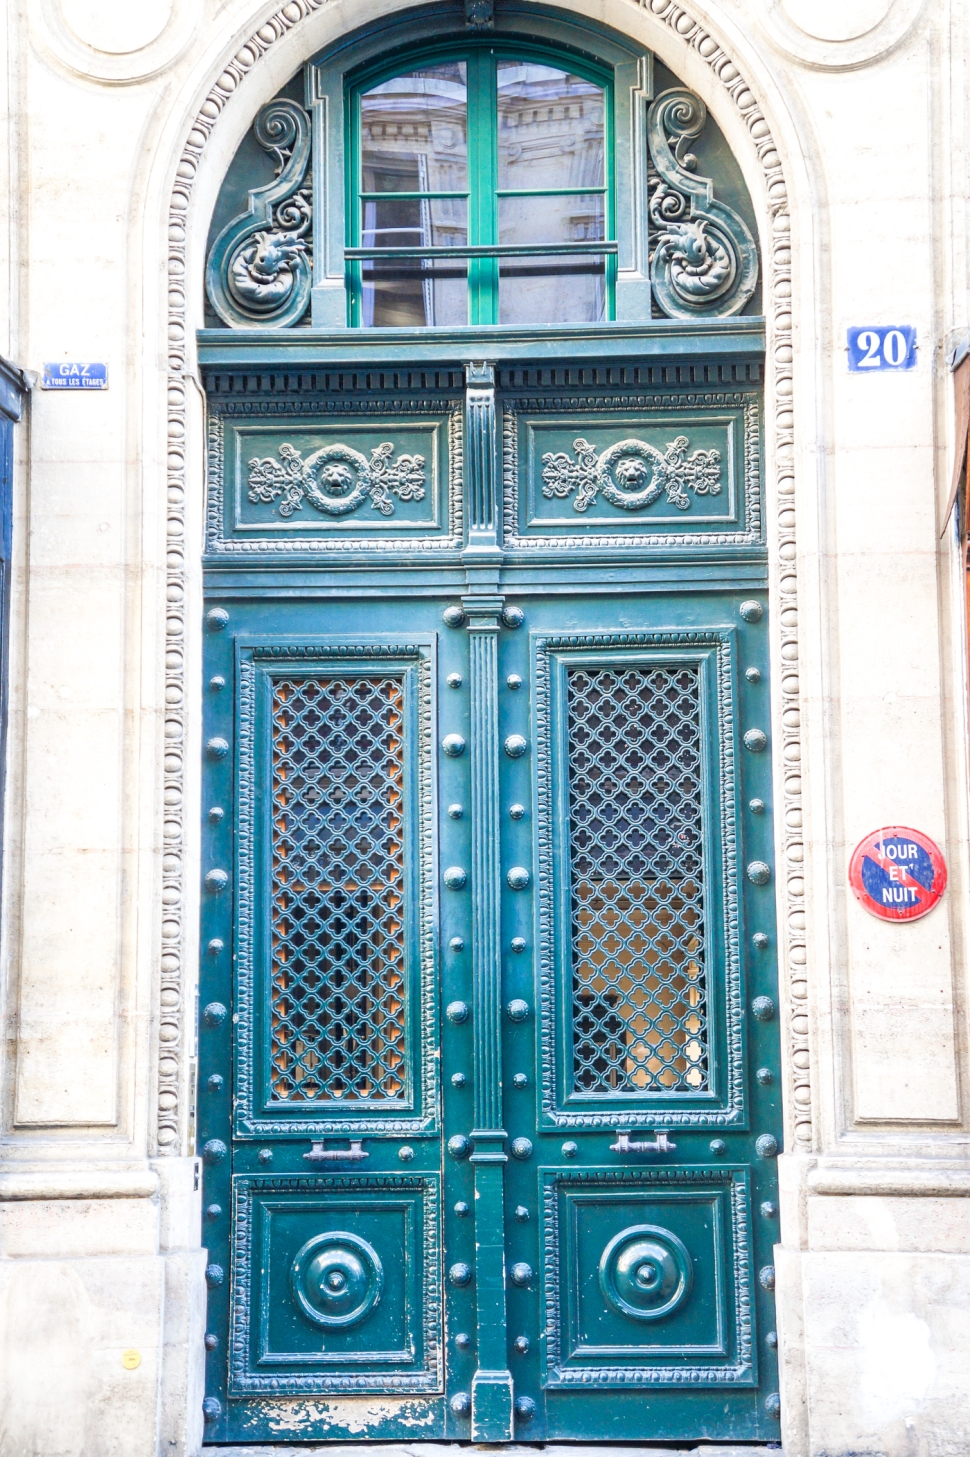 paris-by-polina-paraskevopoulou-blog-all-rights-reserved-32